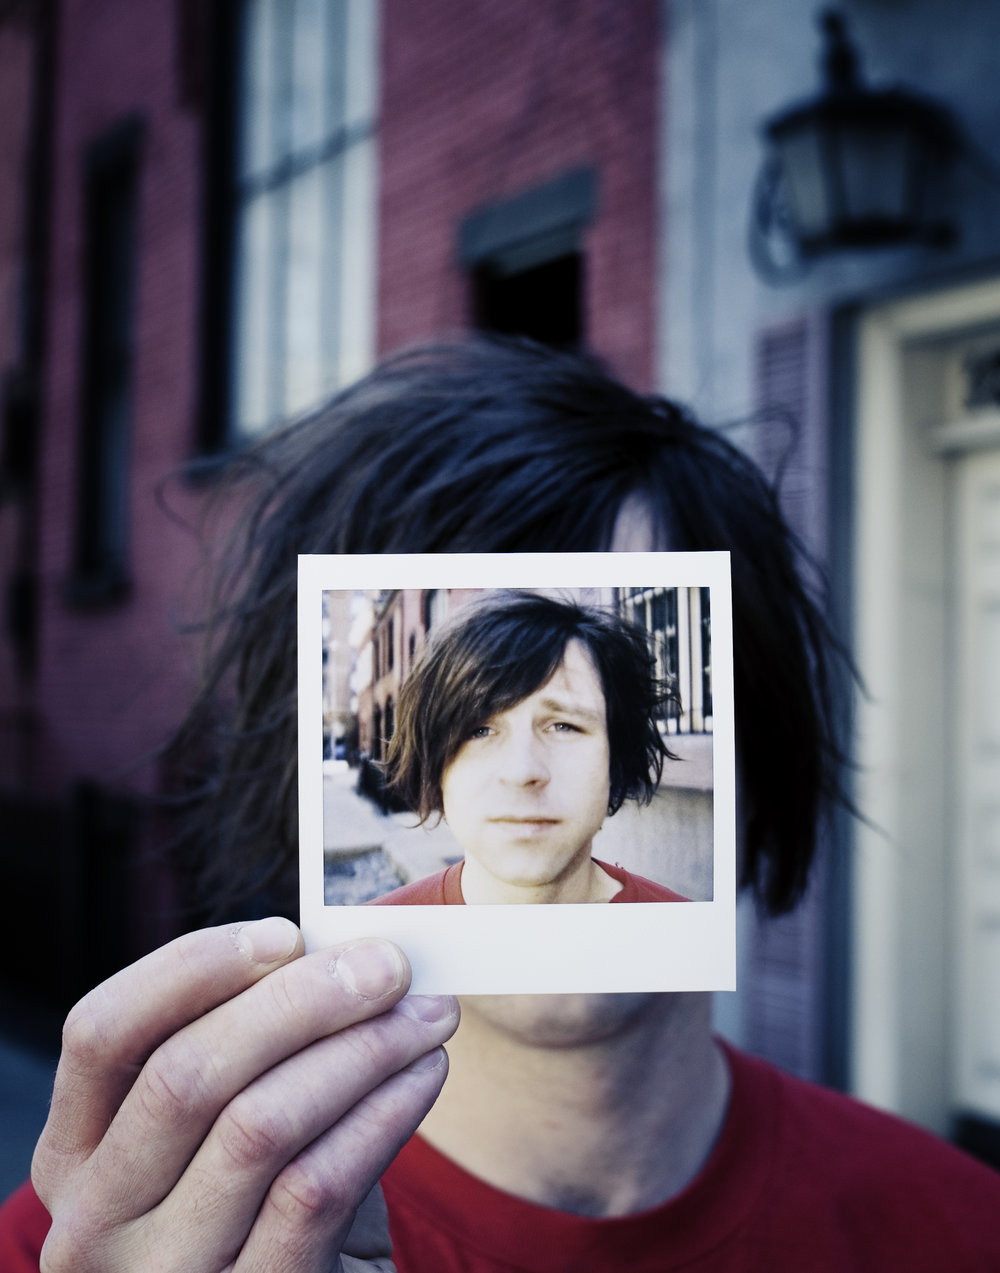 Ryan Adams, New York City, 2007